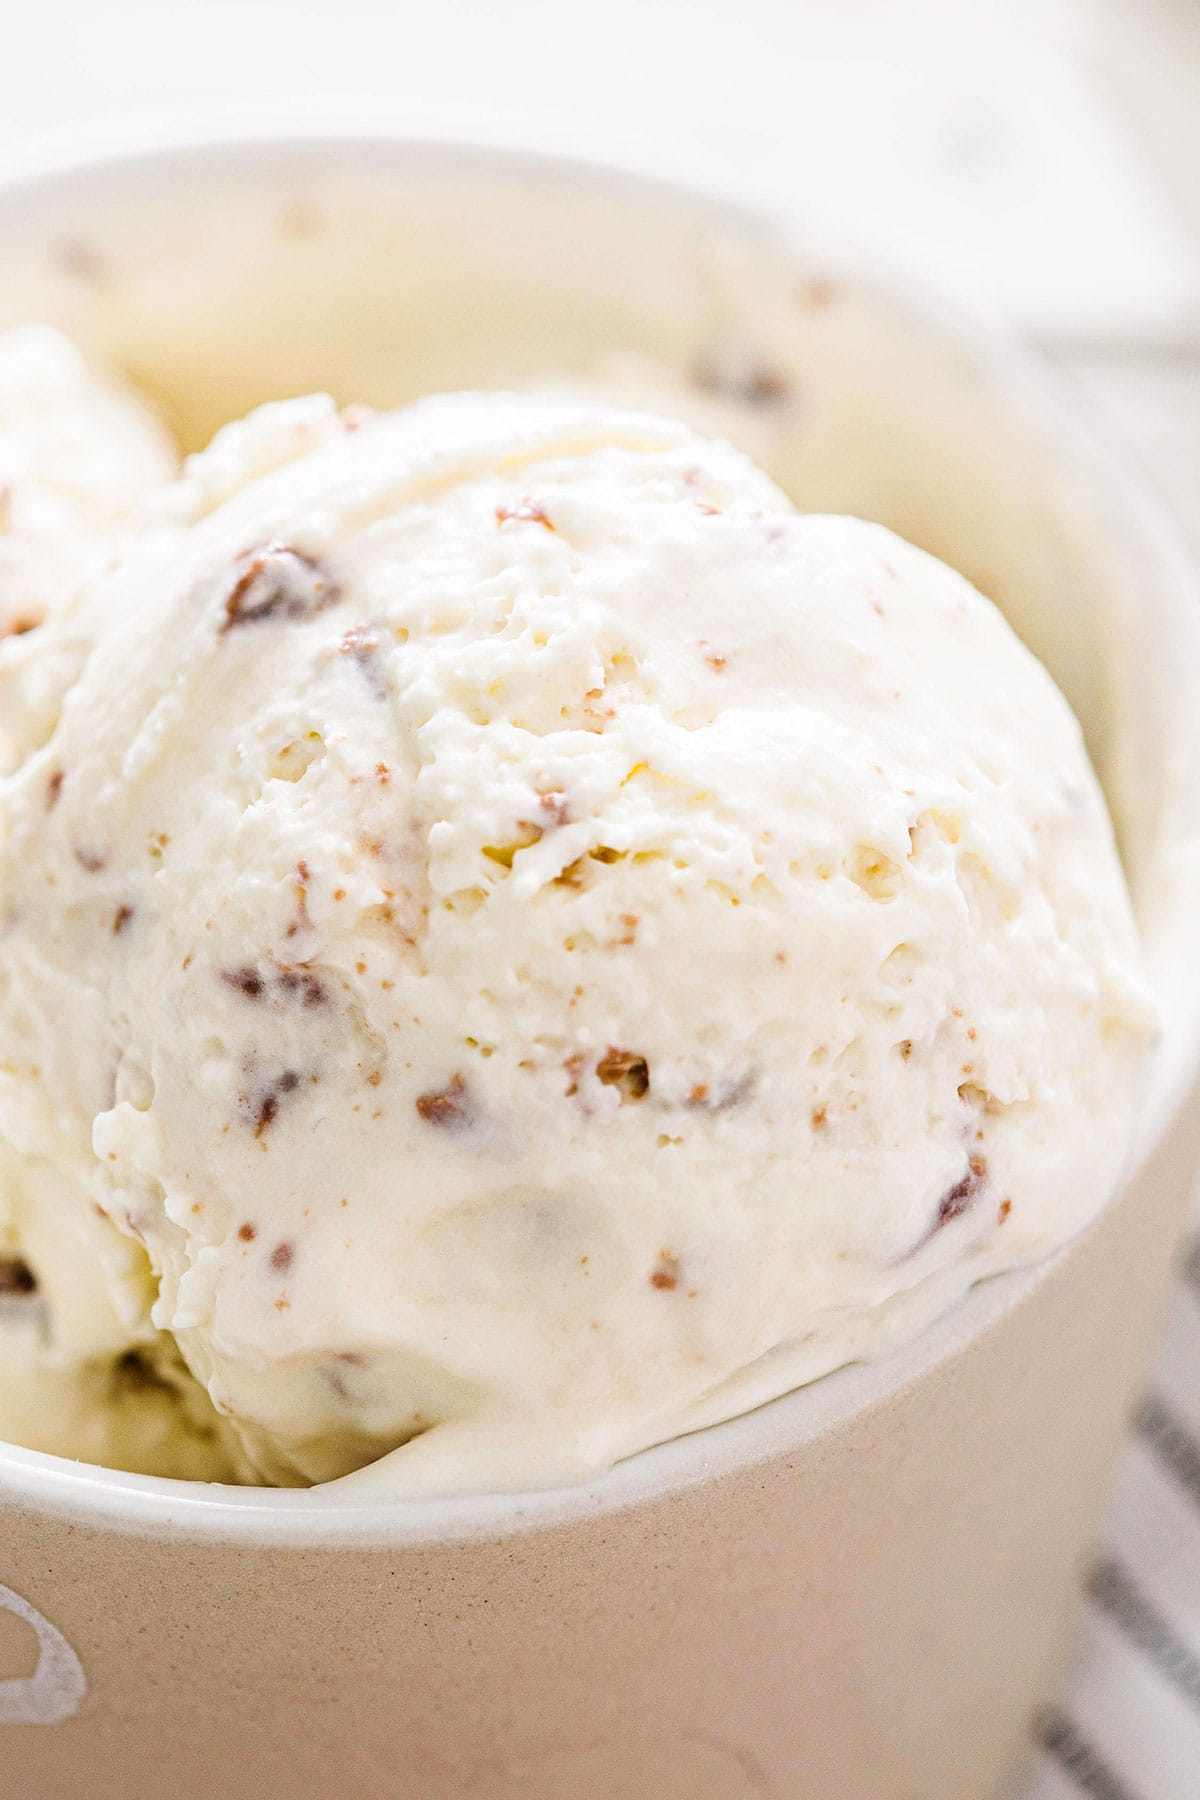 A close up of the ice cream texture.